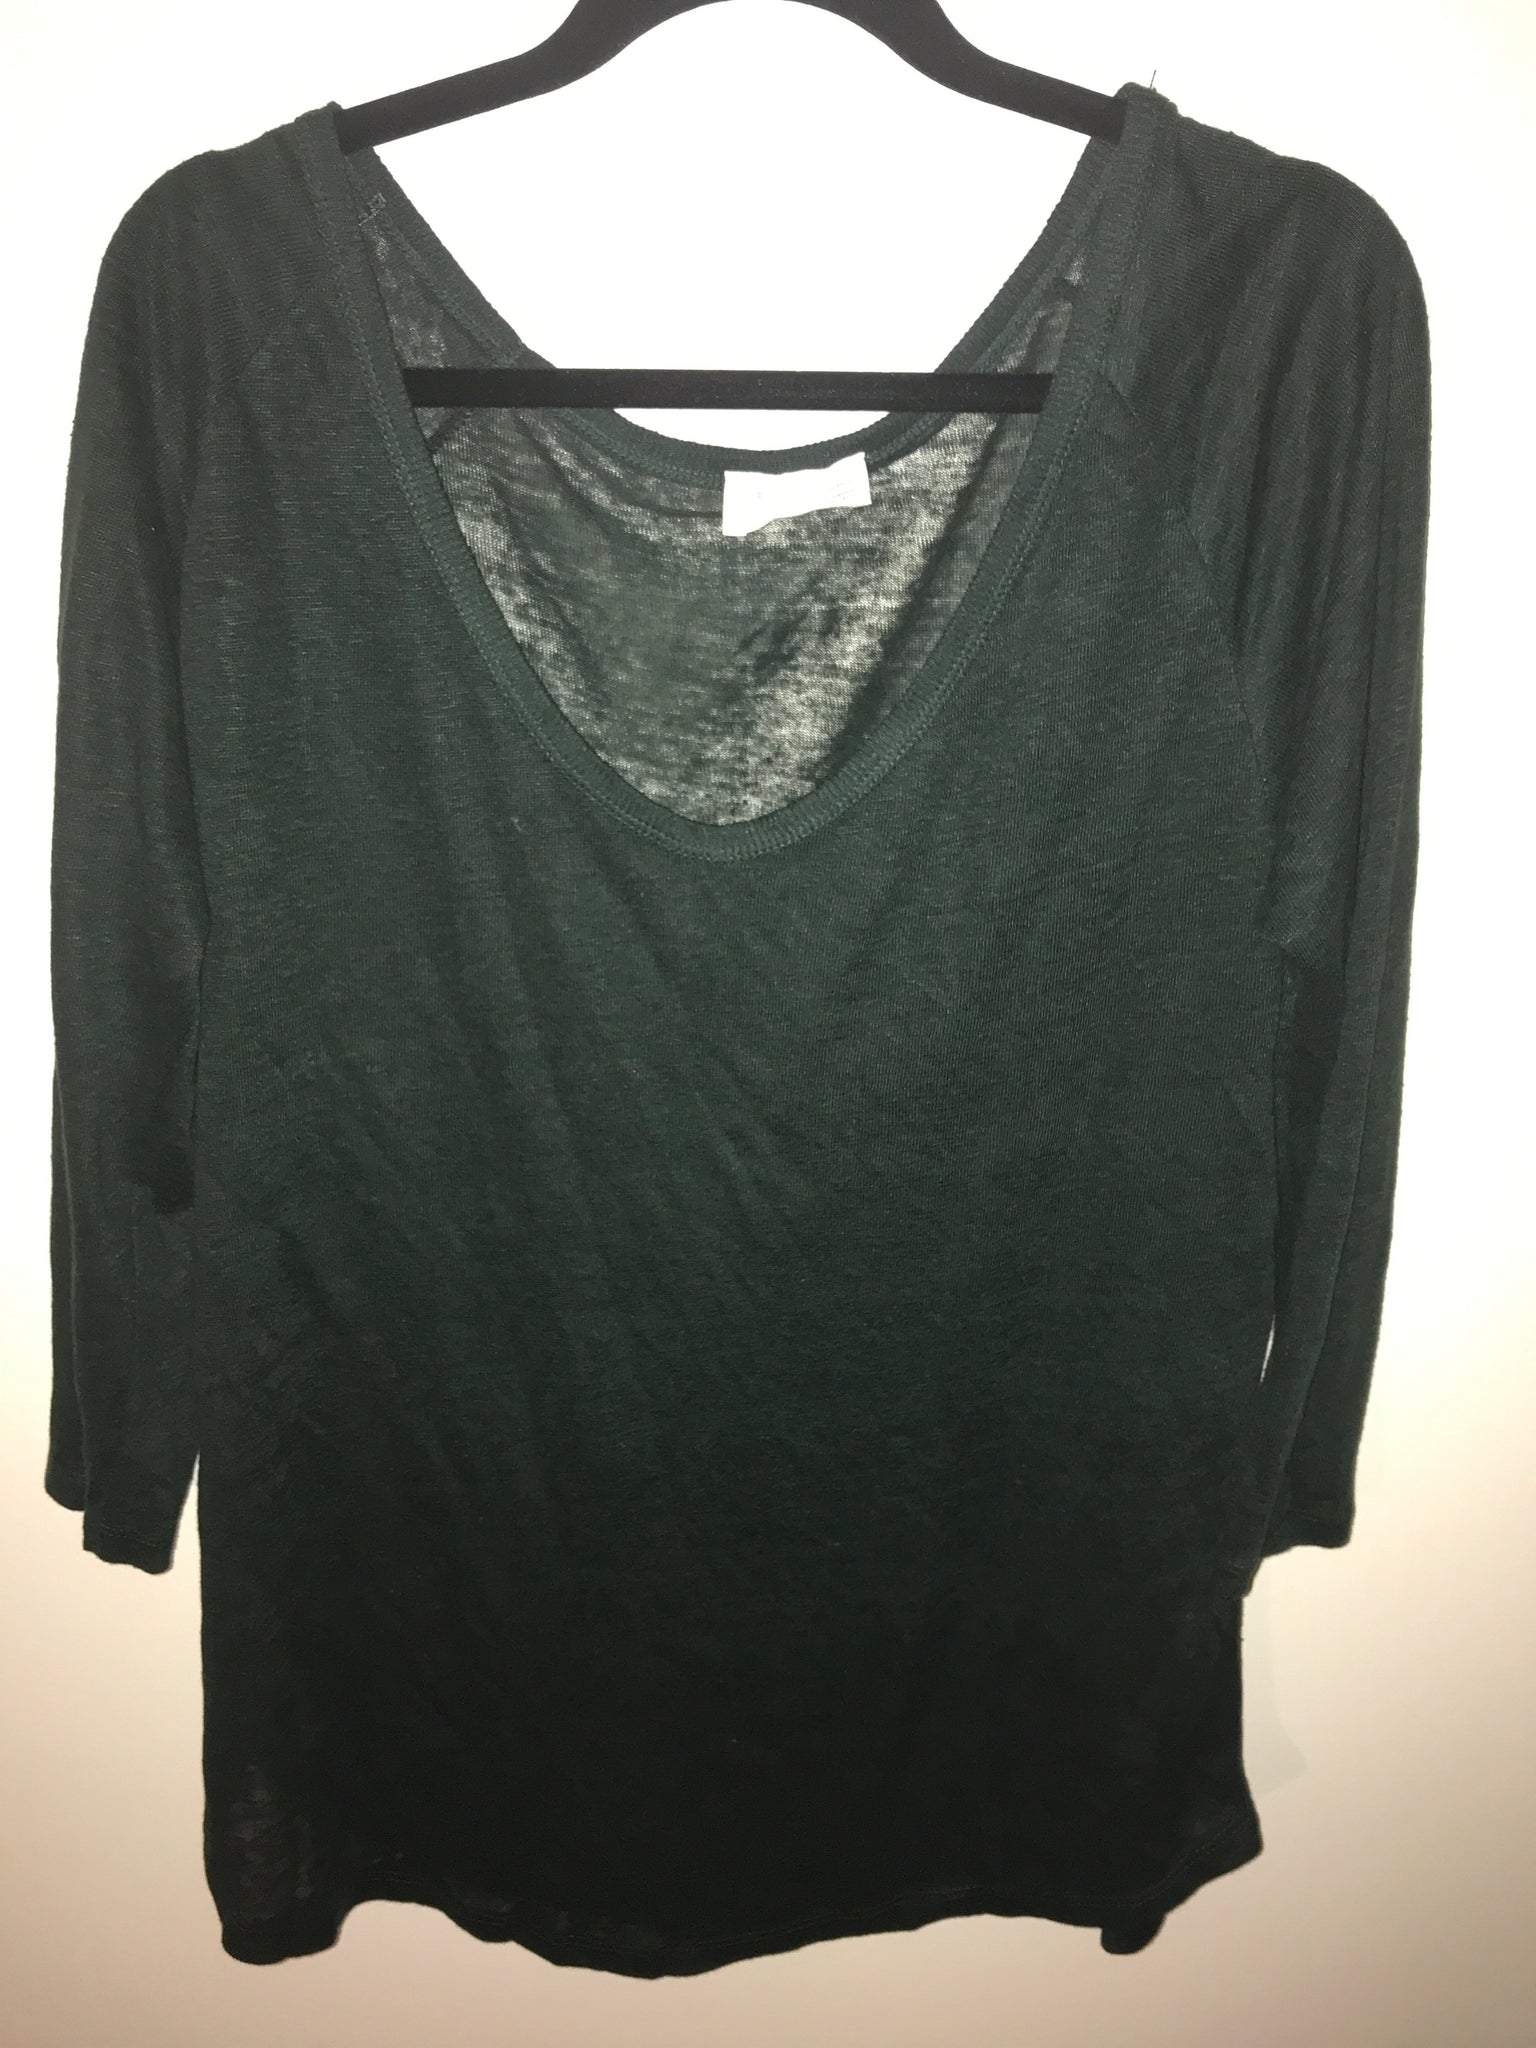 72e063ad Zara T-shirt collection dark green top Size US-Medium – The Old New ...